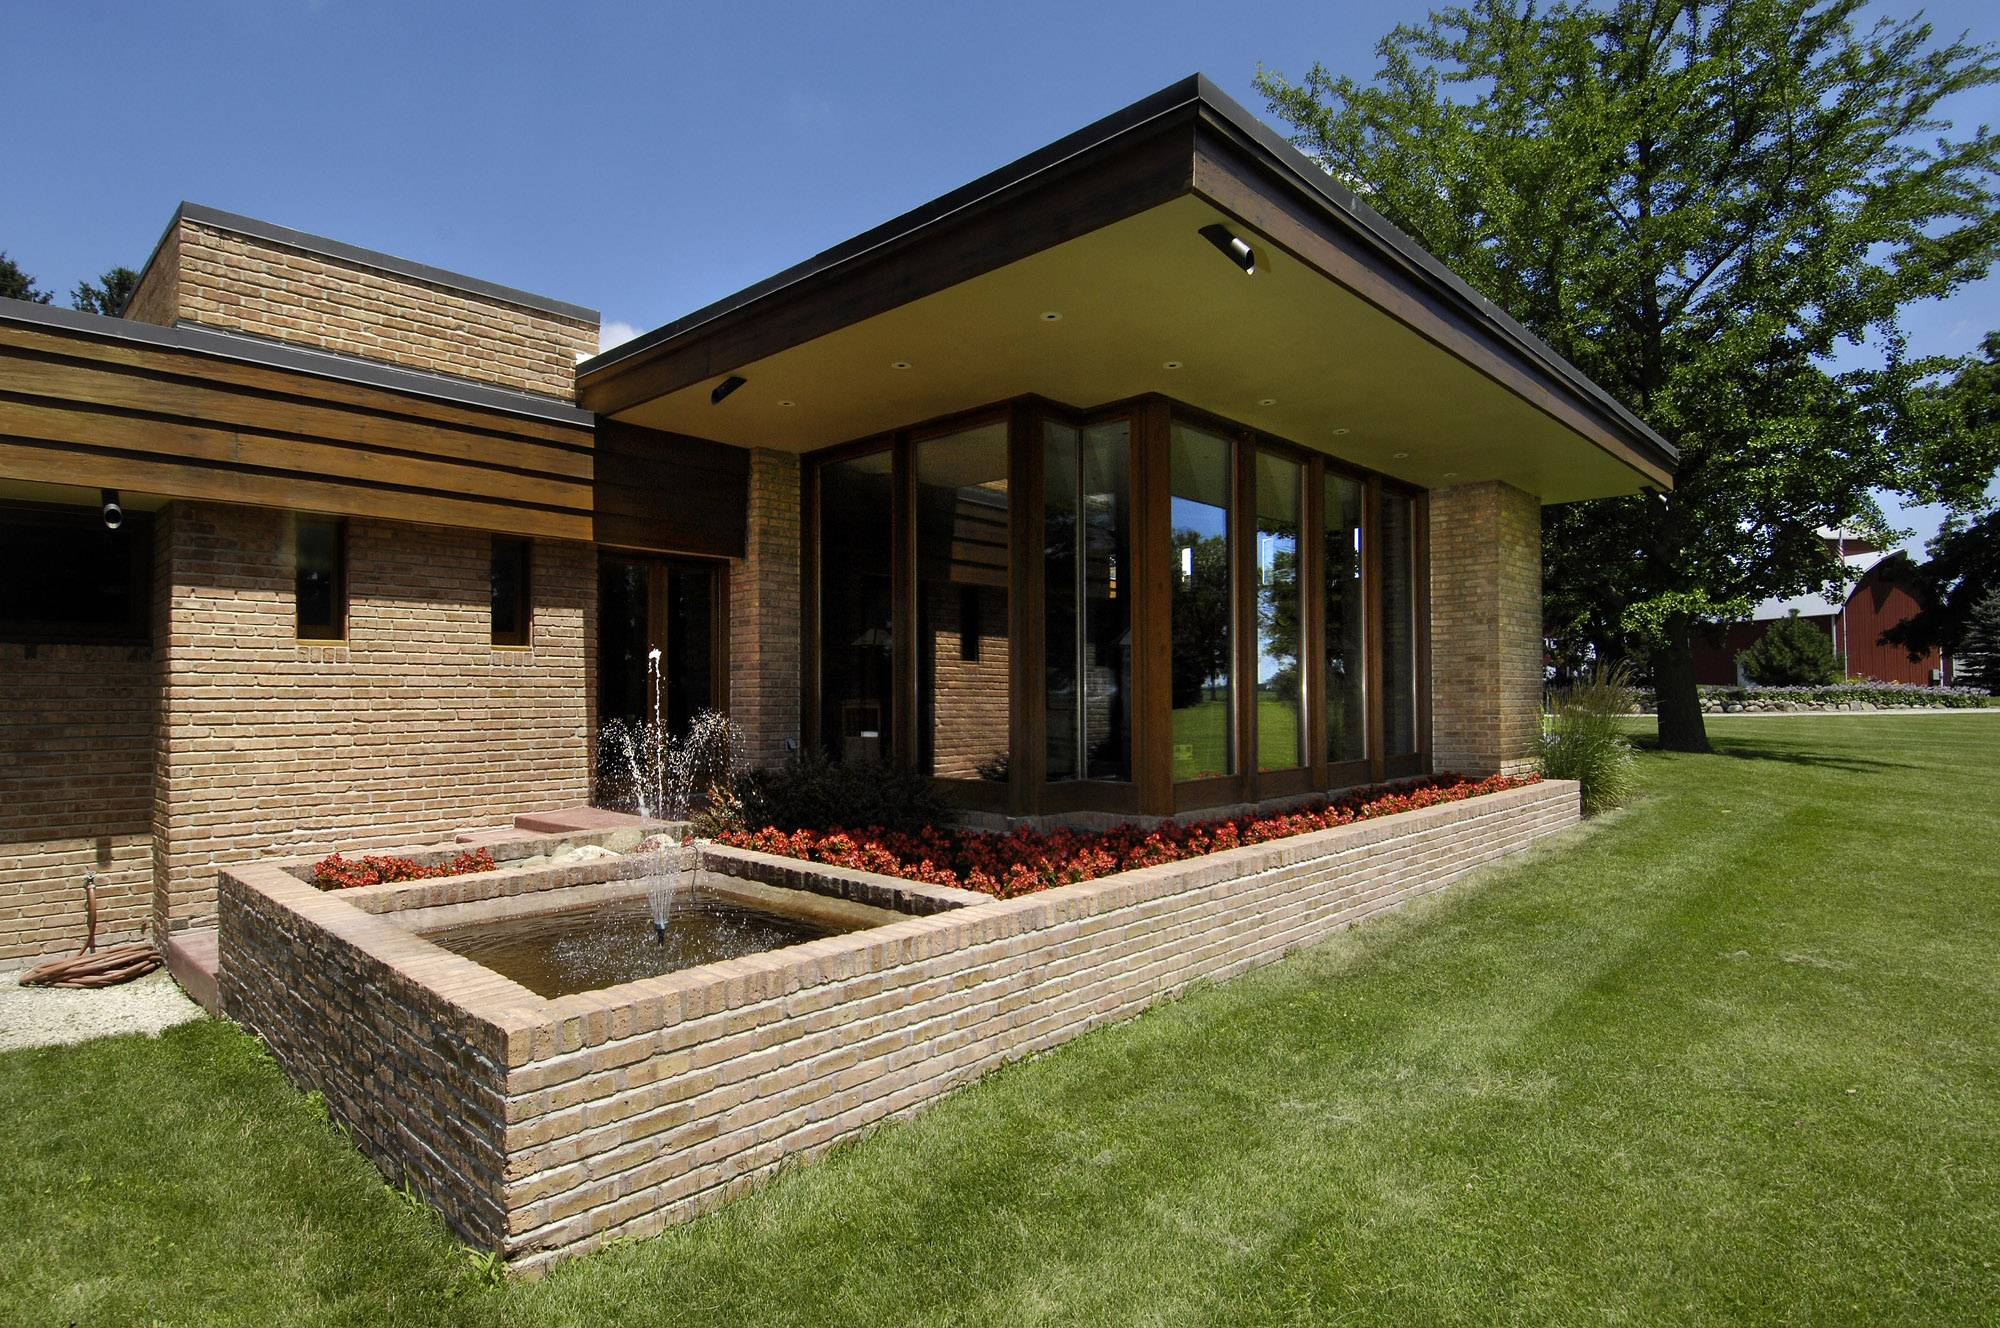 A fountain sprinkles outside the large living room windows of the Muirhead Farmhouse, which was designed by Frank Lloyd Wright in 1951. Its owners hope to have the home added to the National Register of Historic Places.